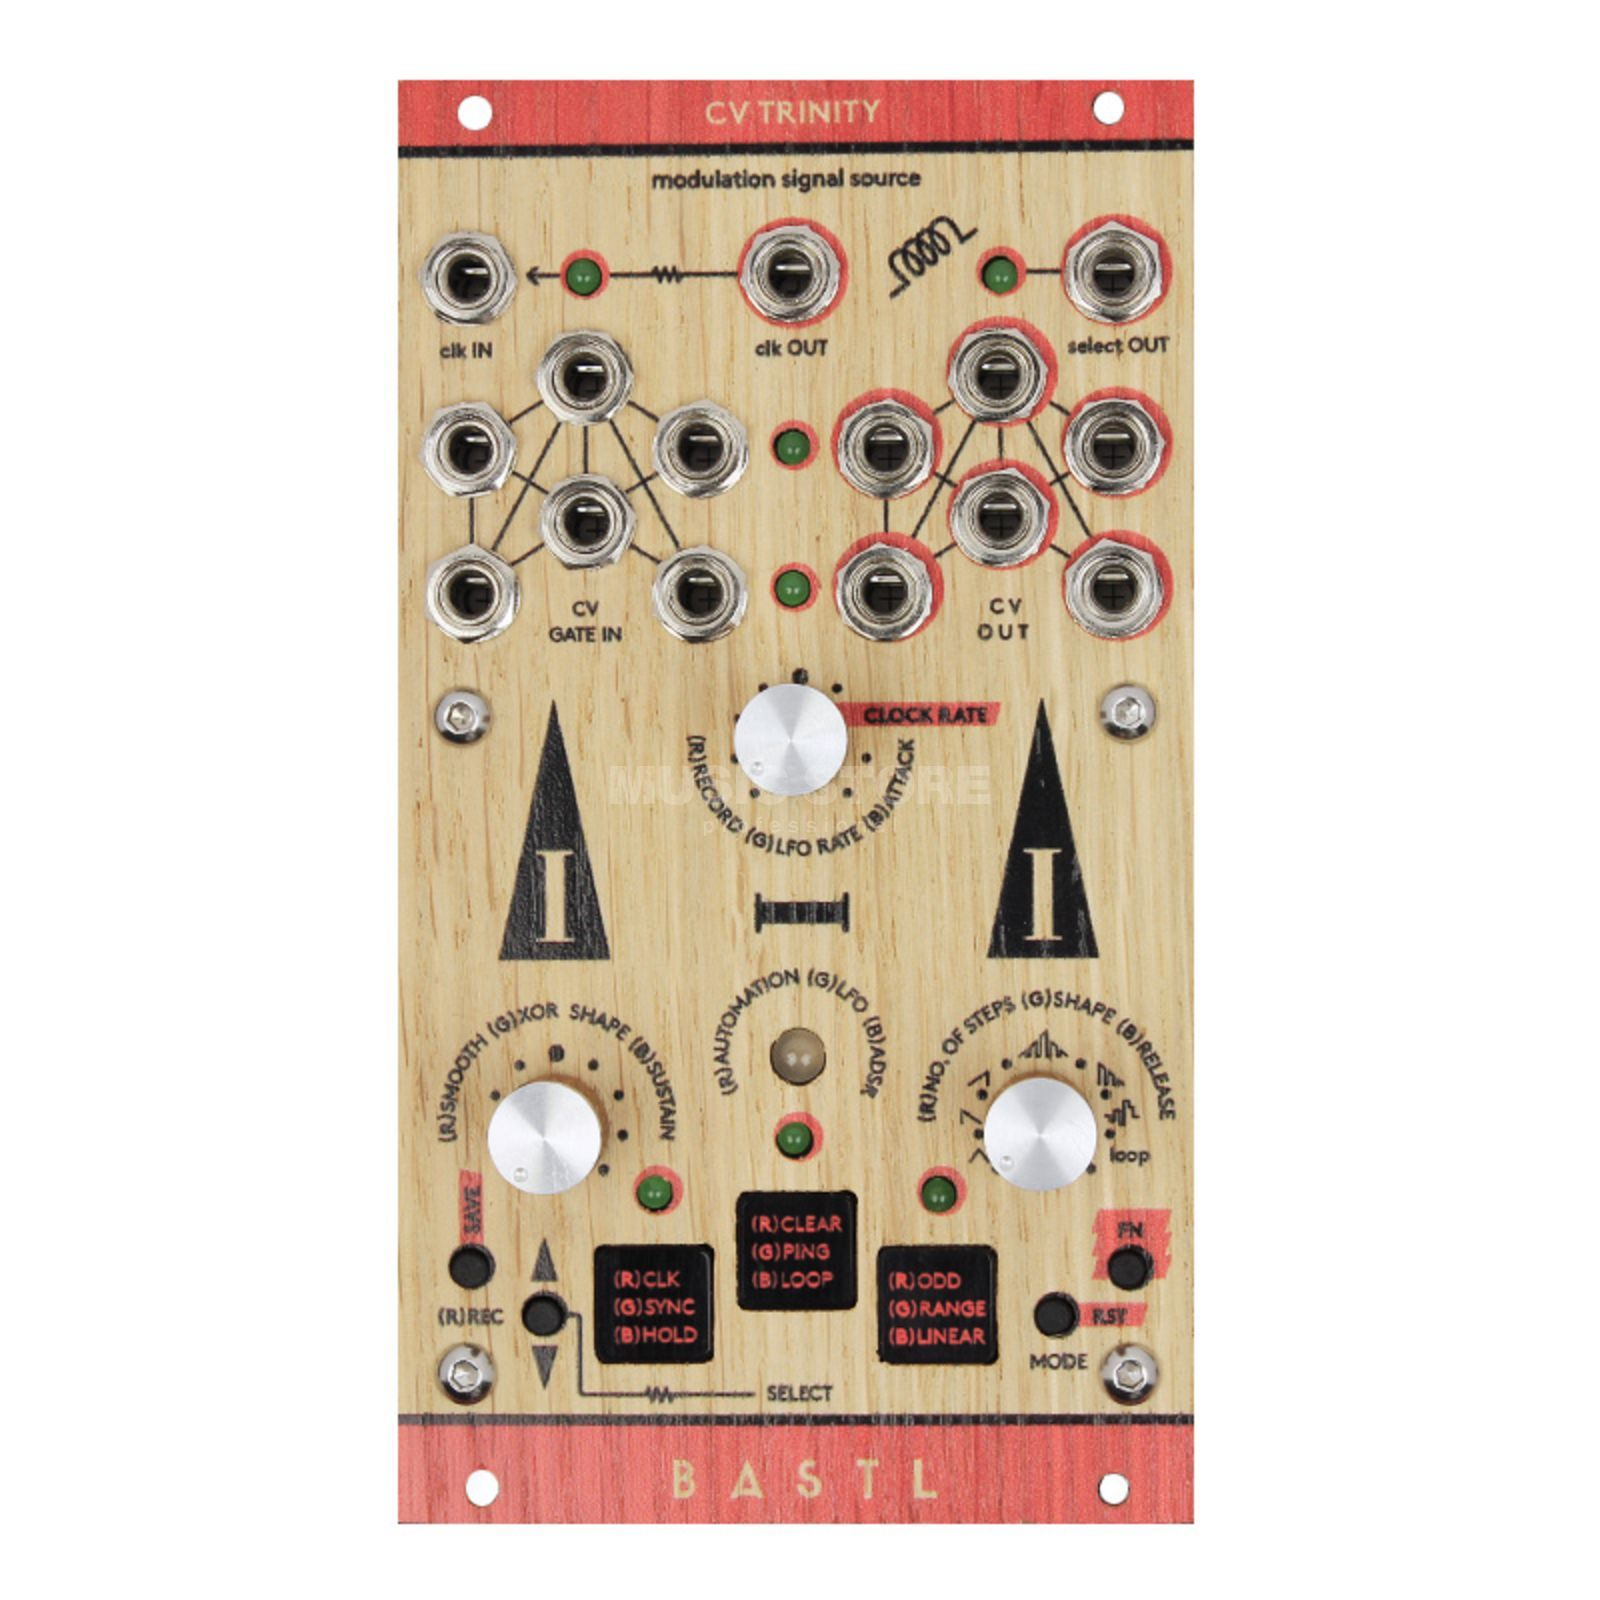 Bastl Instruments cv trinity modulation signal source Product Image